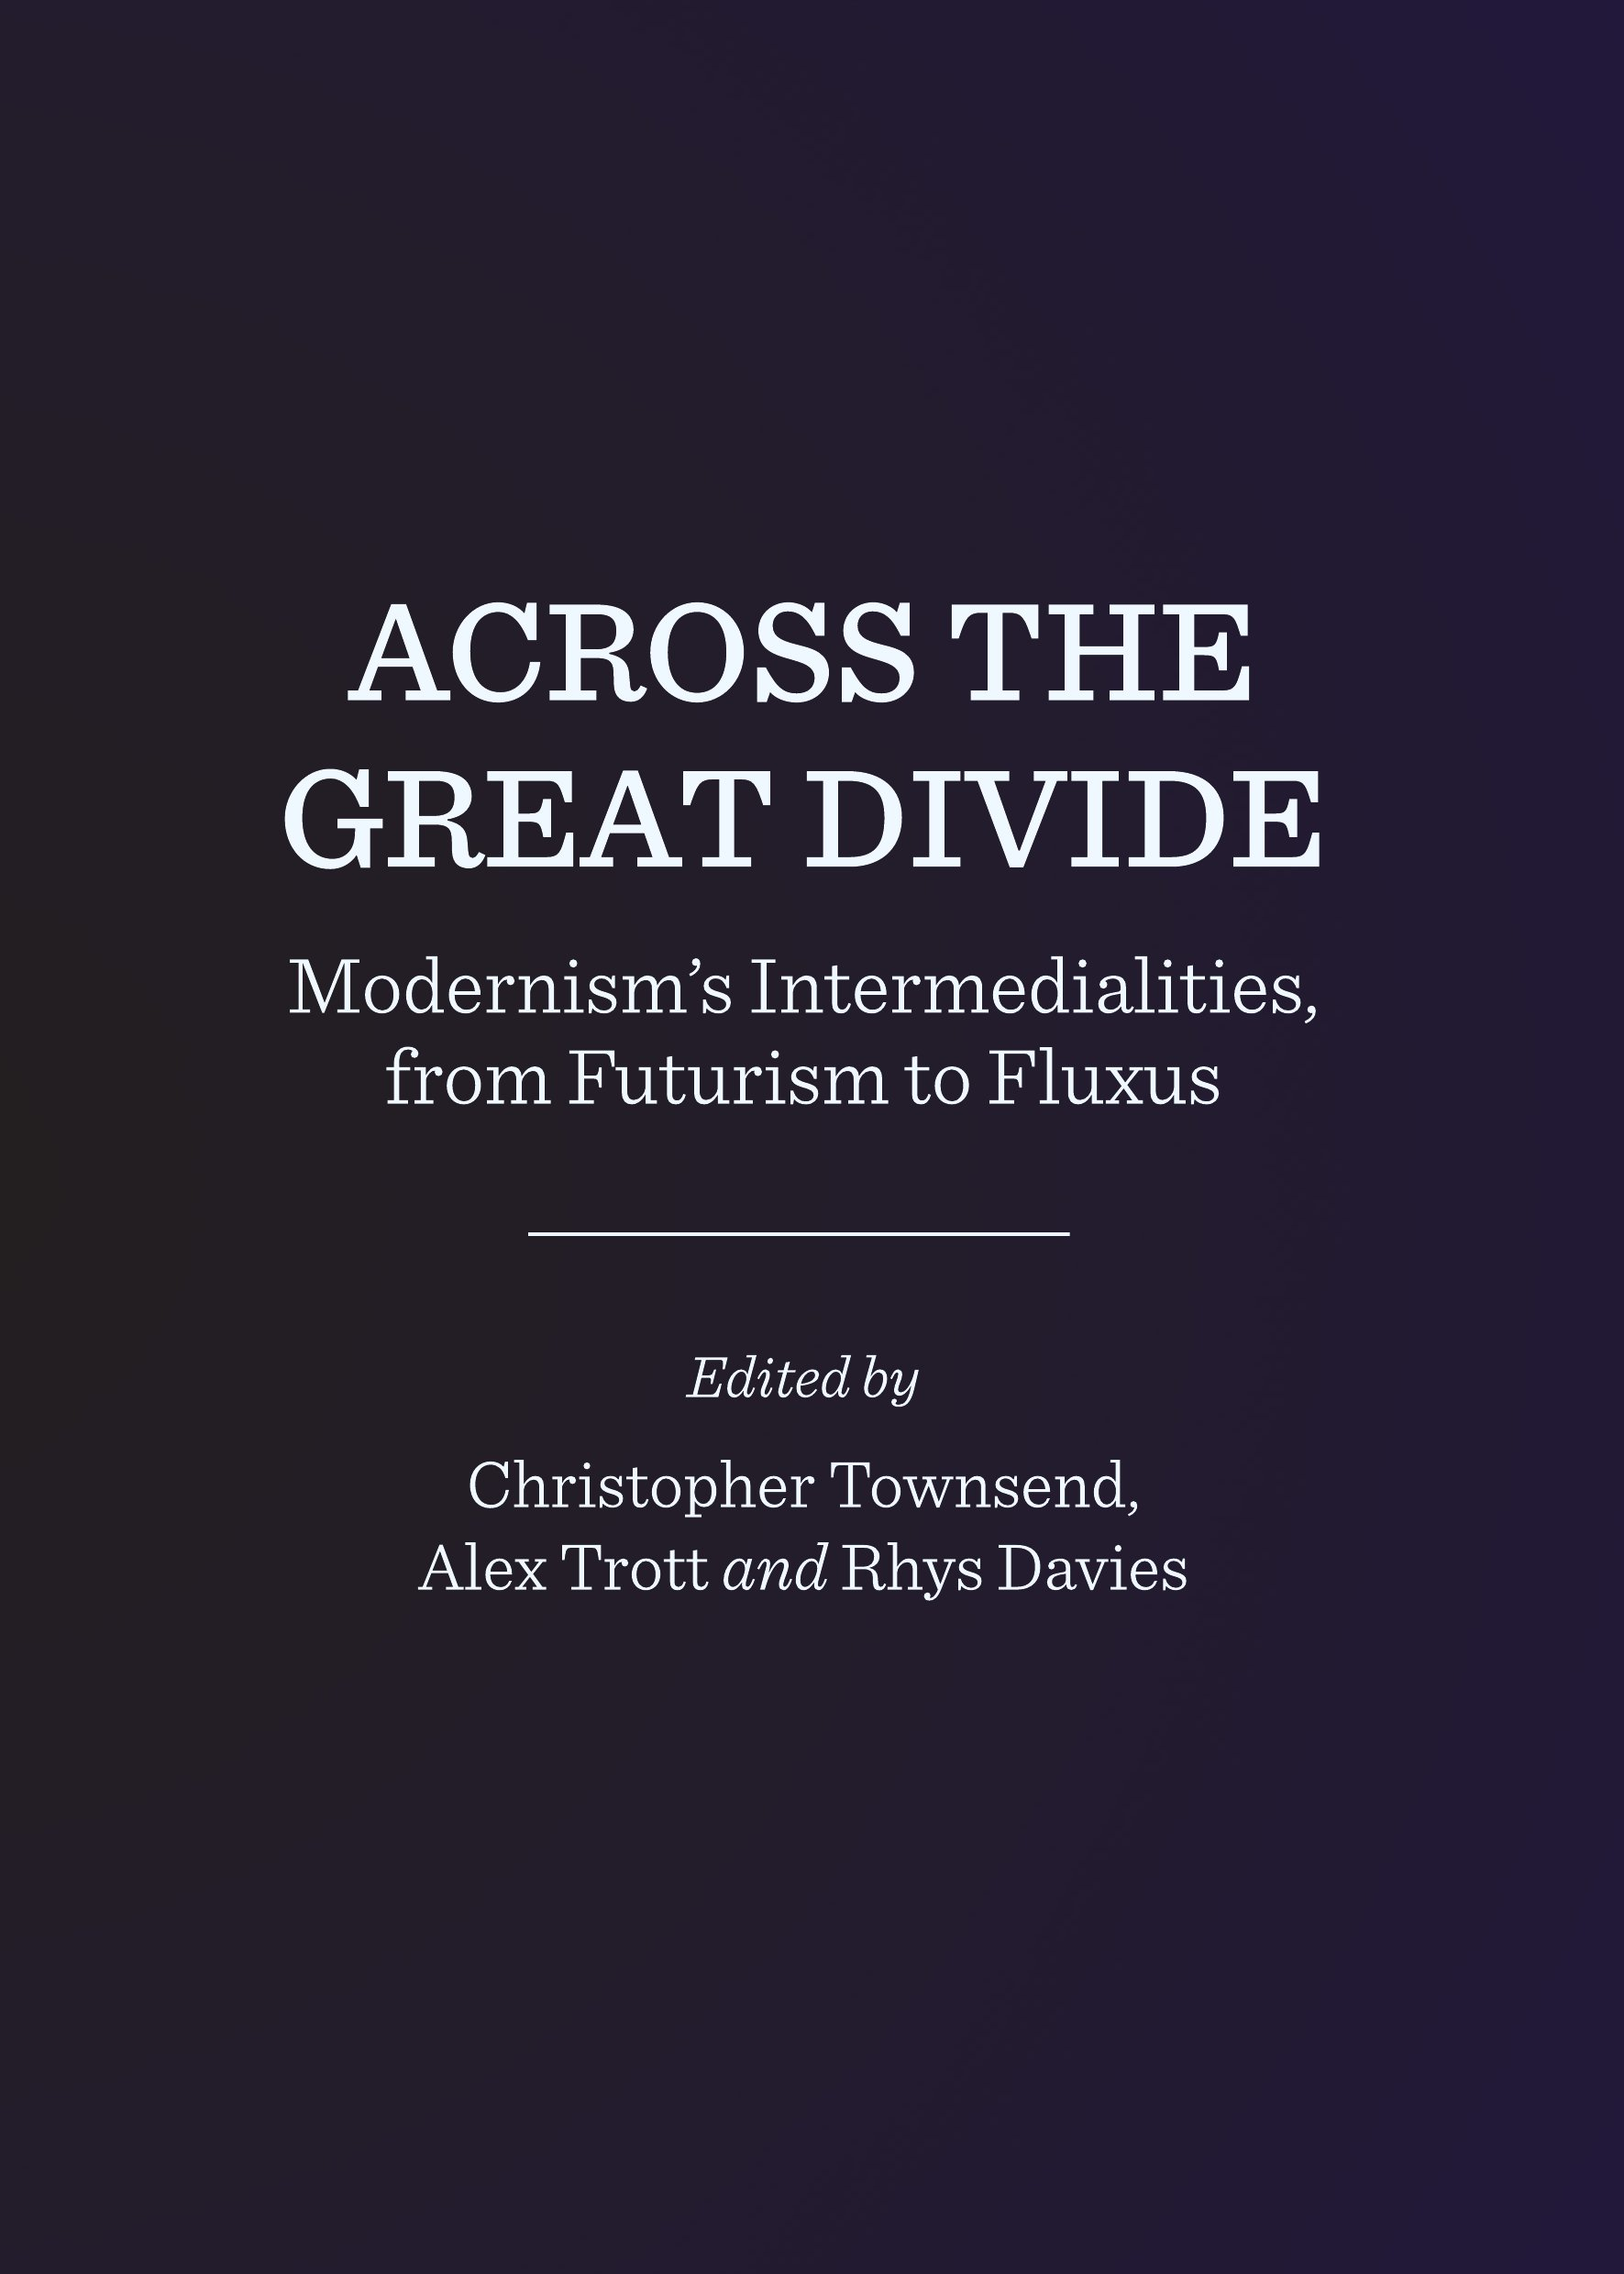 Across the Great Divide: Modernism's Intermedialities, from Futurism to Fluxus